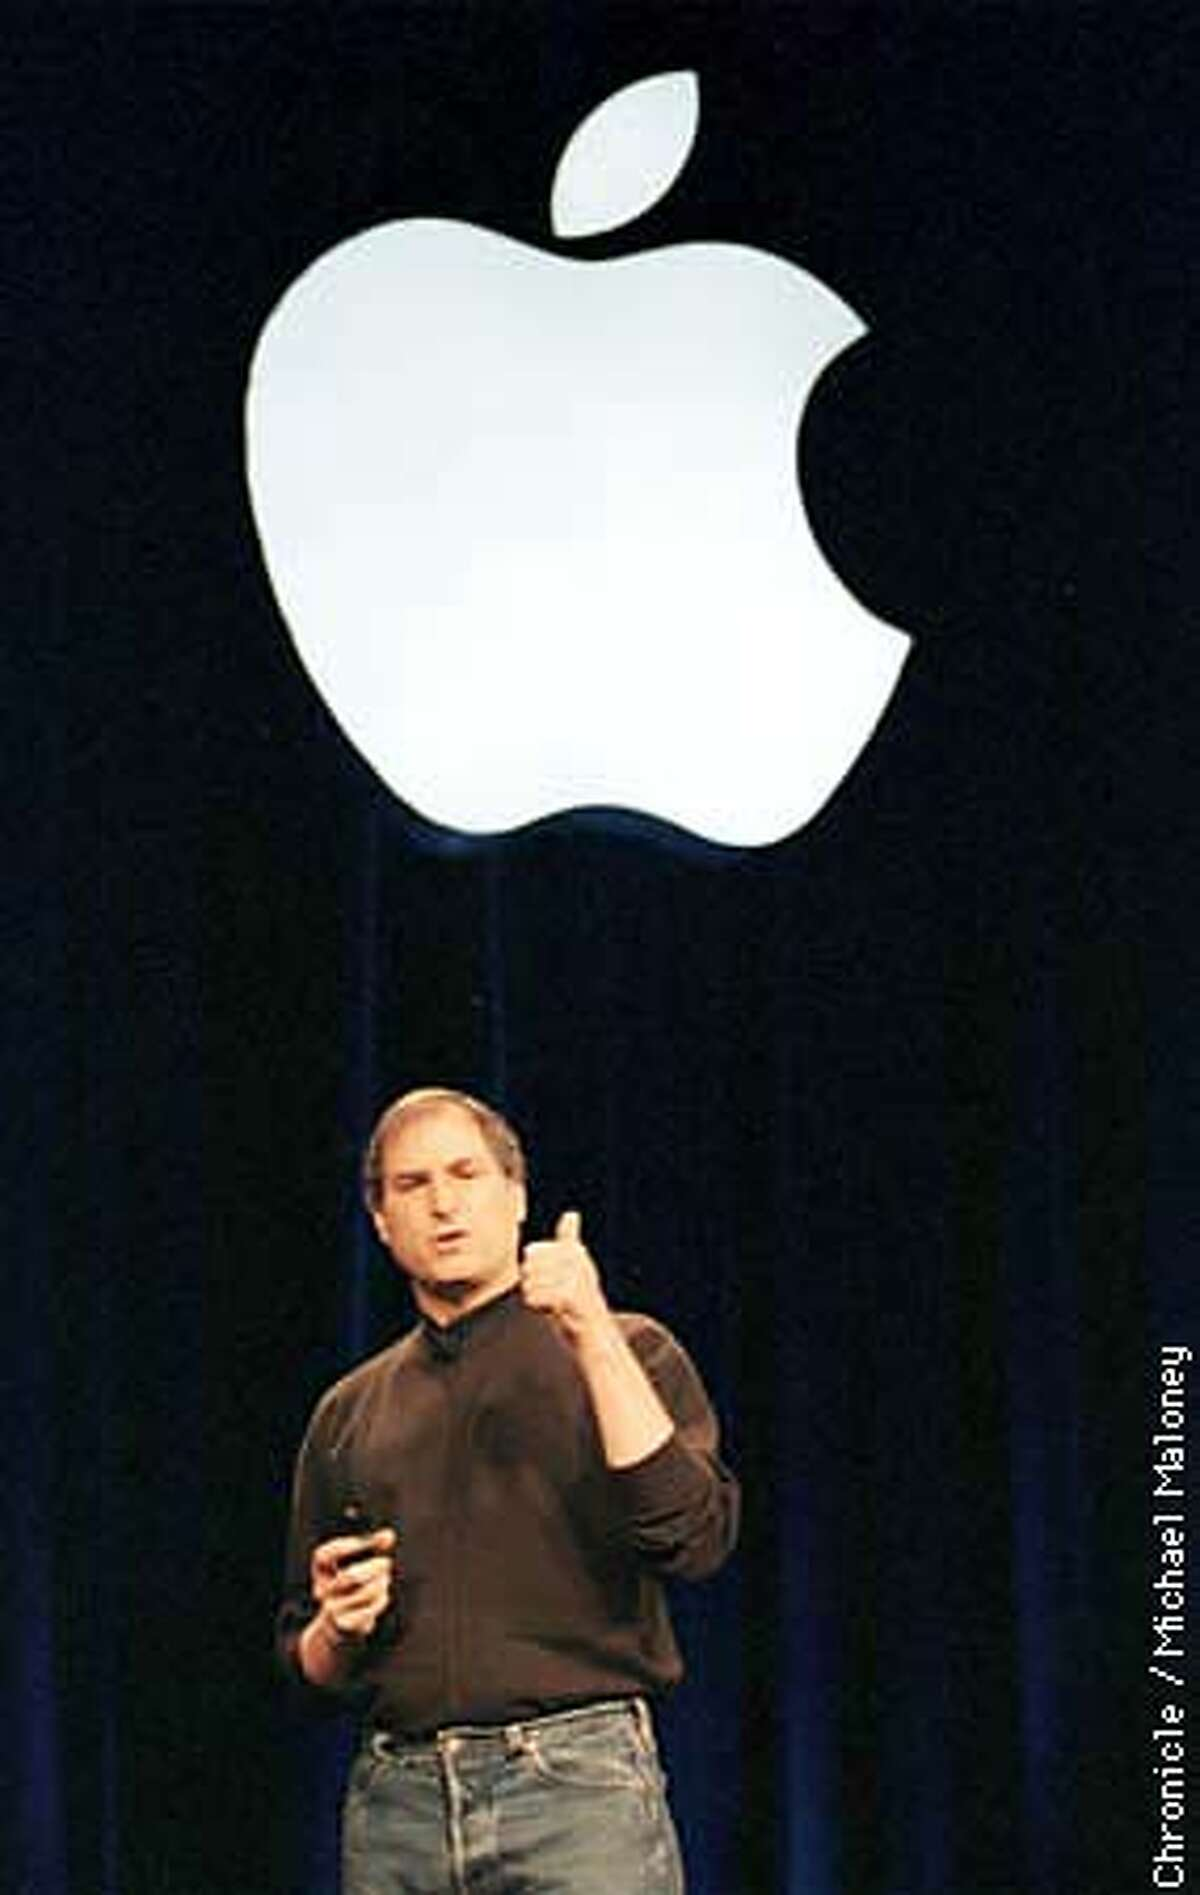 Apple interim CEO Steve Jobs gave a 2 hour speech discussing the company's software plans at the worldwide developers conference at the San Jose Convention Center. Photo by Michael Maloney